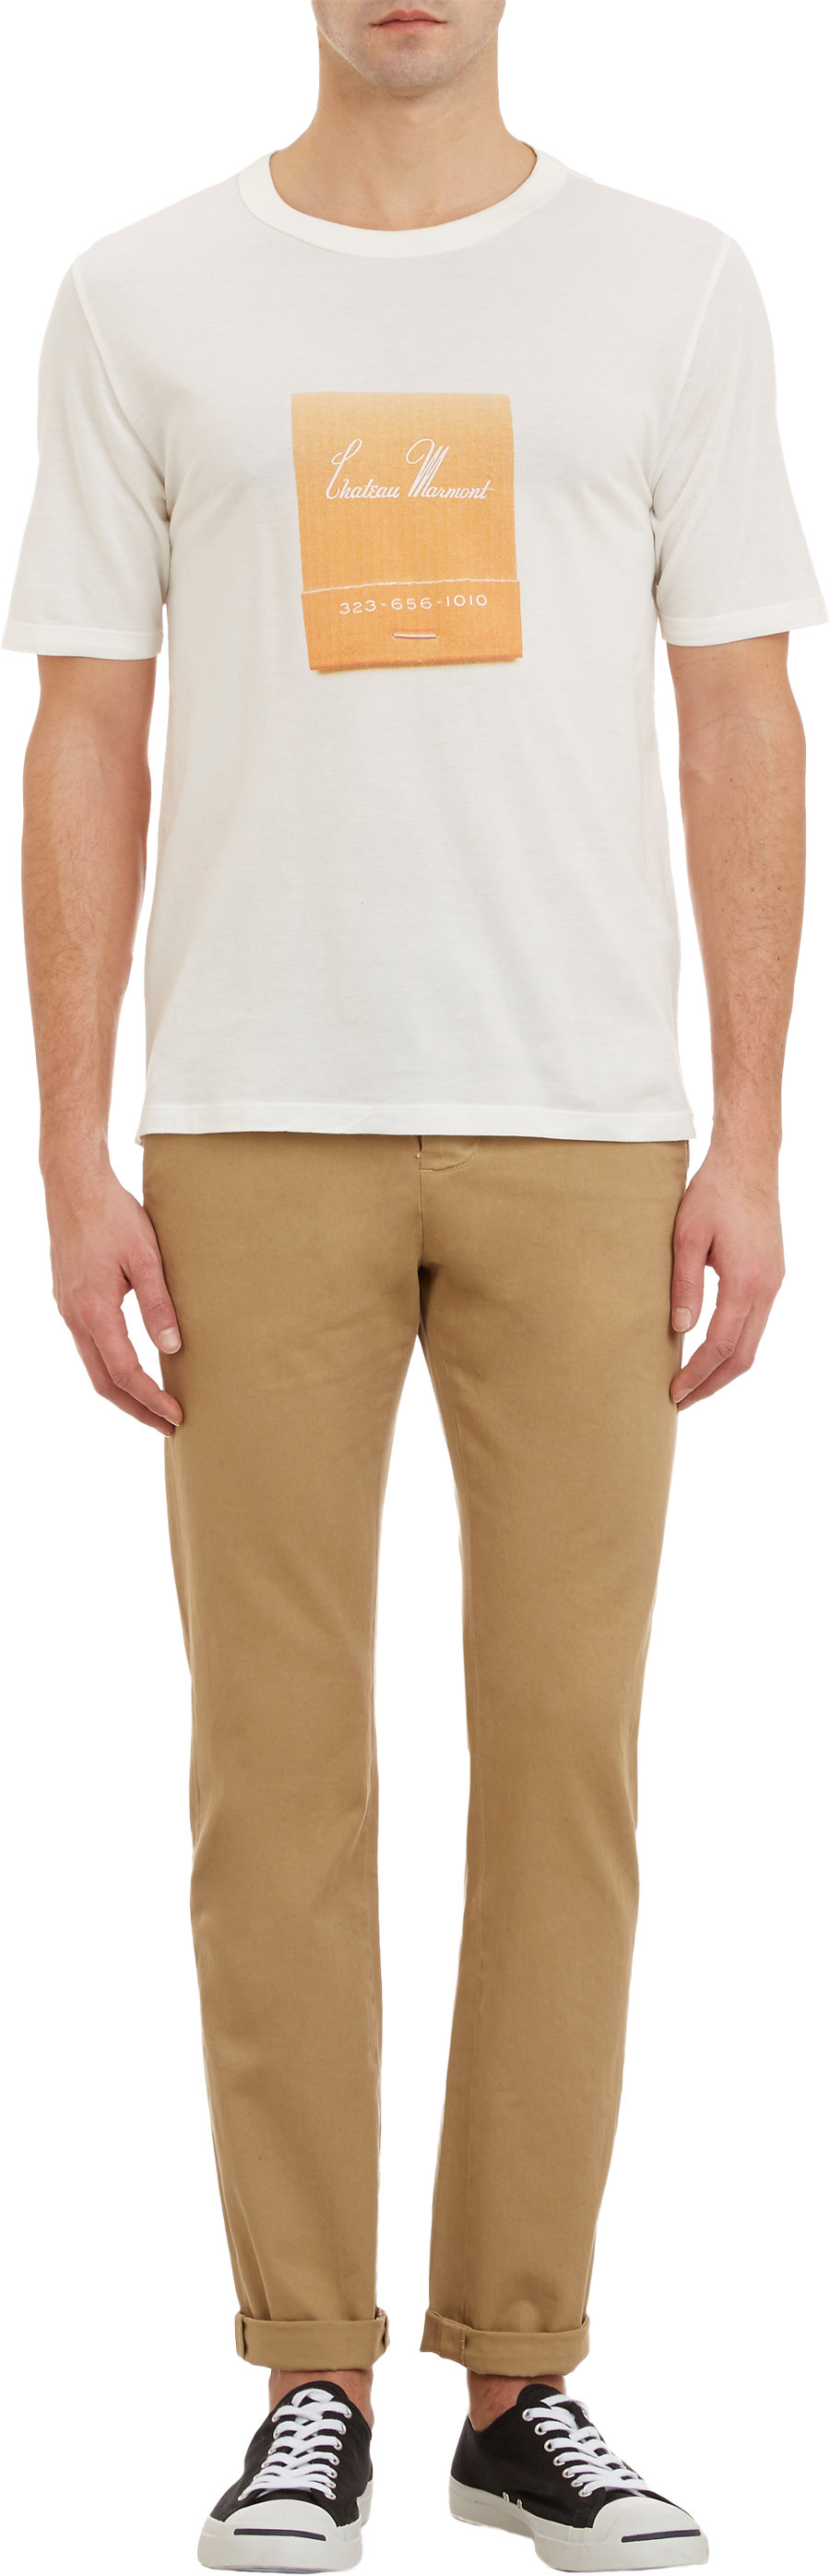 268adfce47f Band of Outsiders Chateau Marmont Matchbook Tshirt in White for Men ...